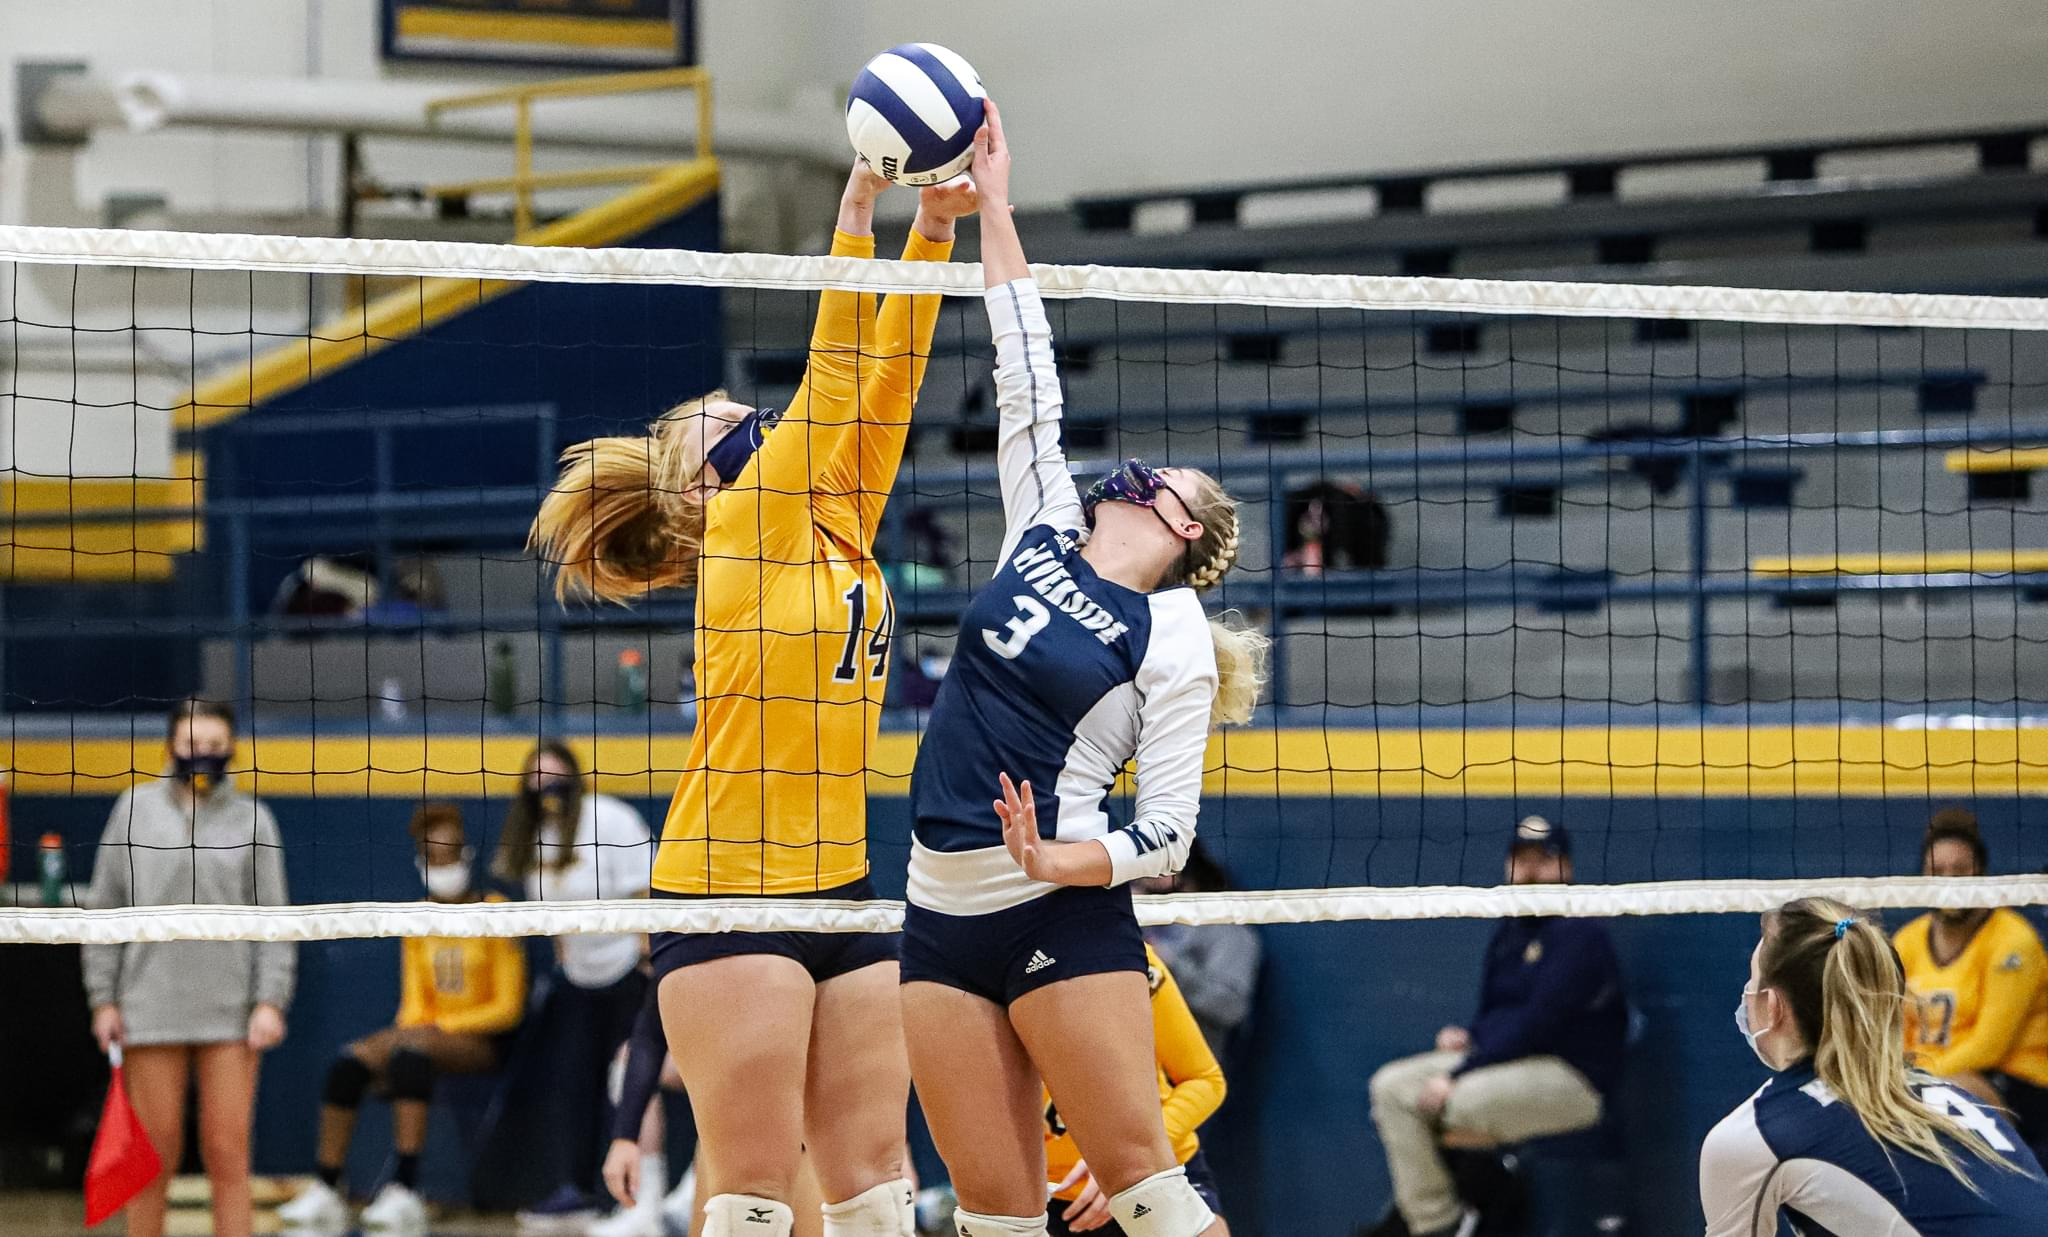 Volleyball: Goldsboro Earns Seventh Straight Win (PHOTO GALLERY)